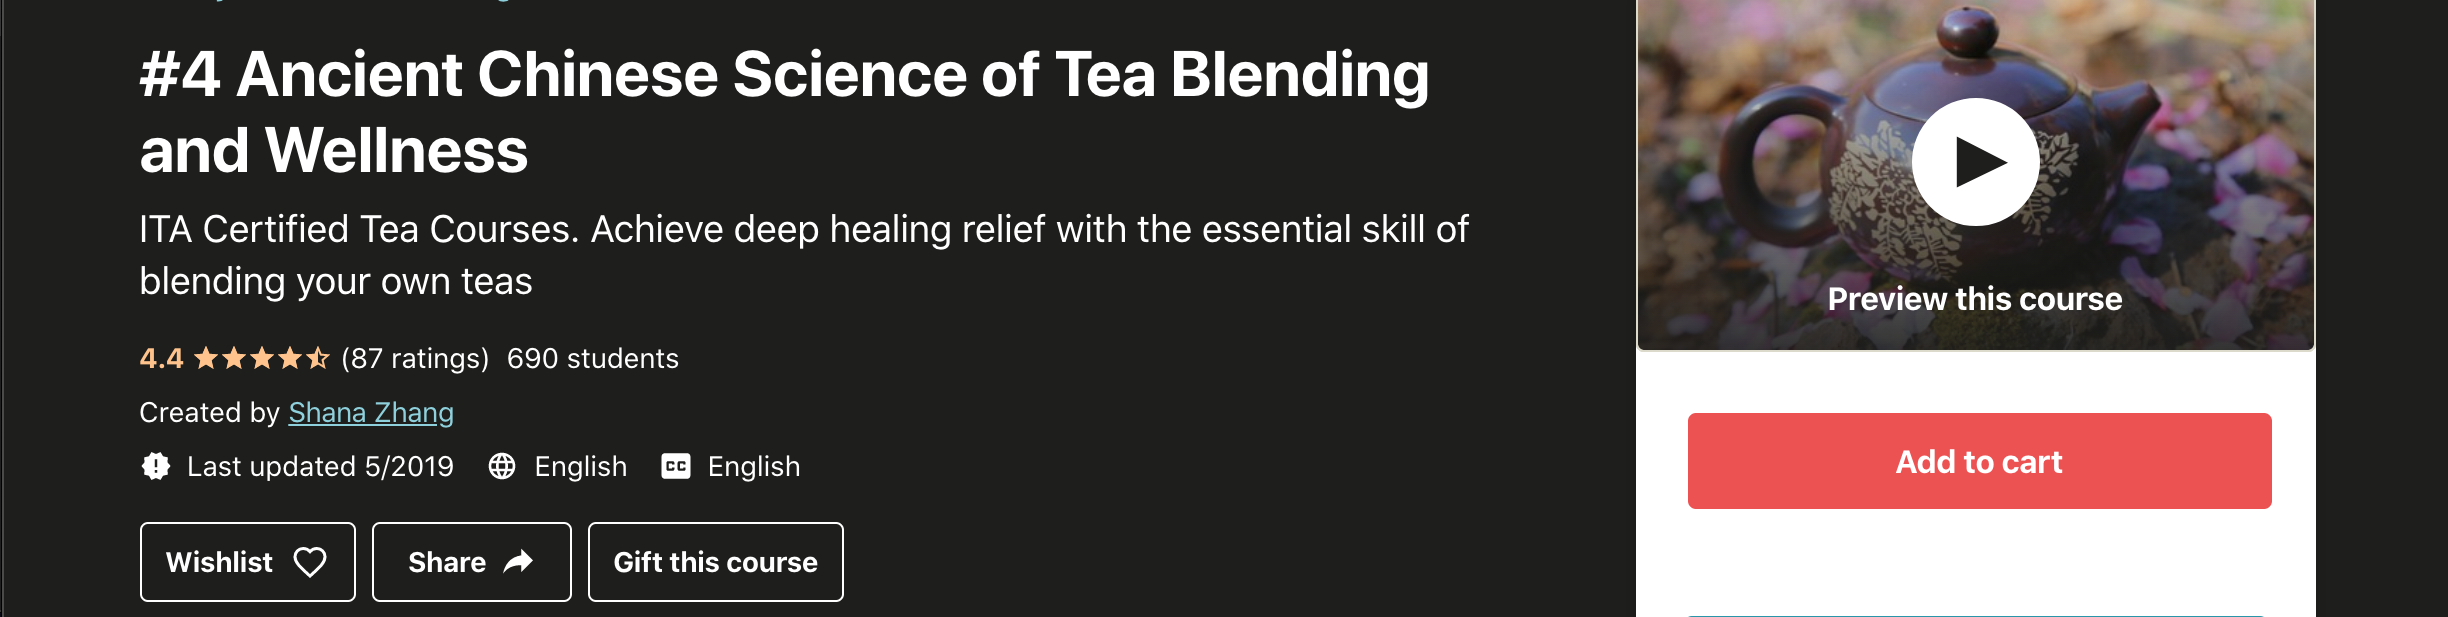 #4 Ancient Chinese Science of Tea Blending and Wellness